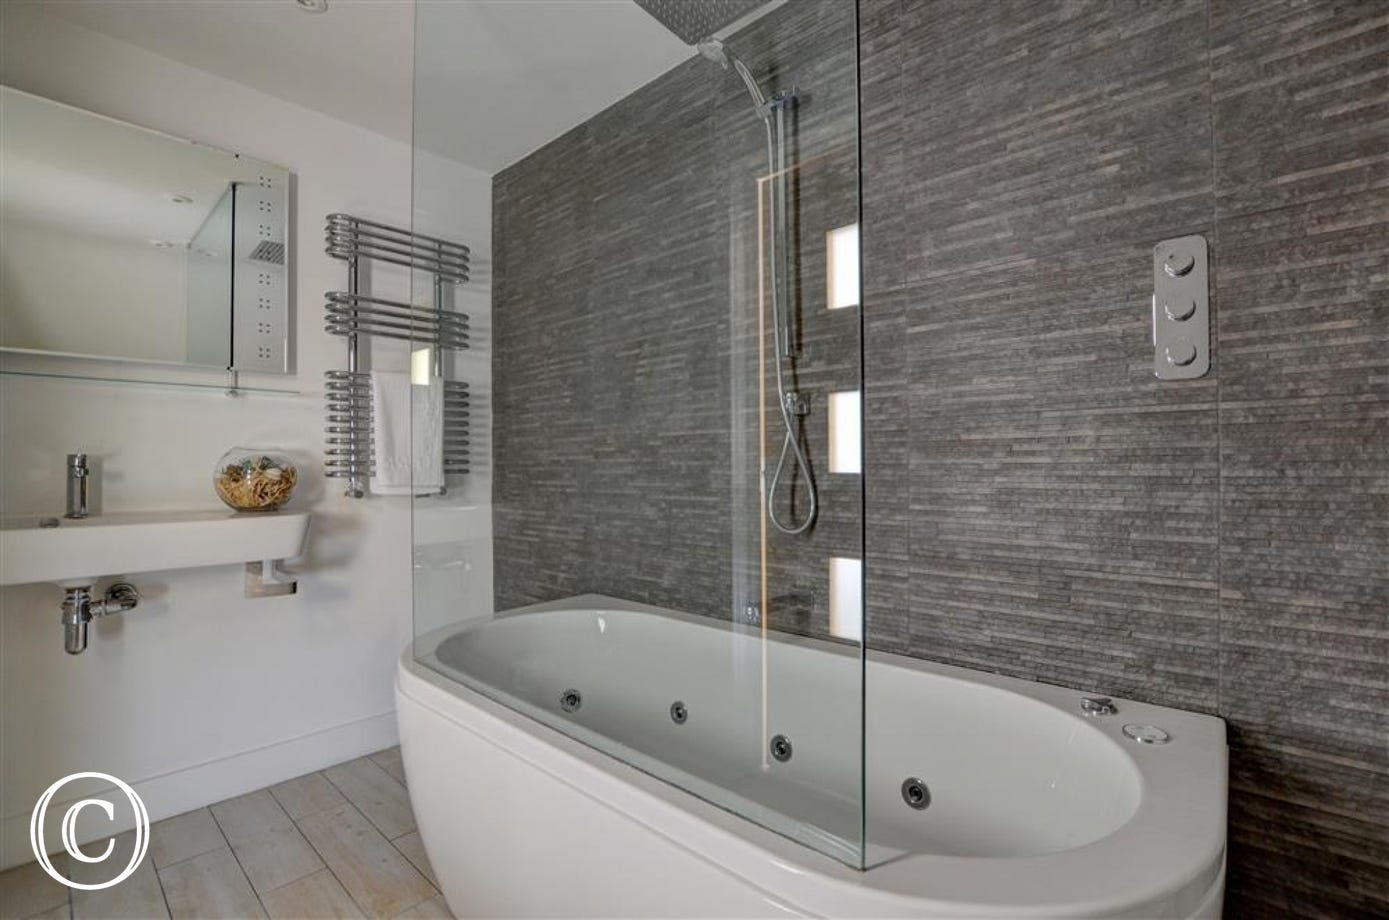 Magnificent ensuite bathroom with spa bath